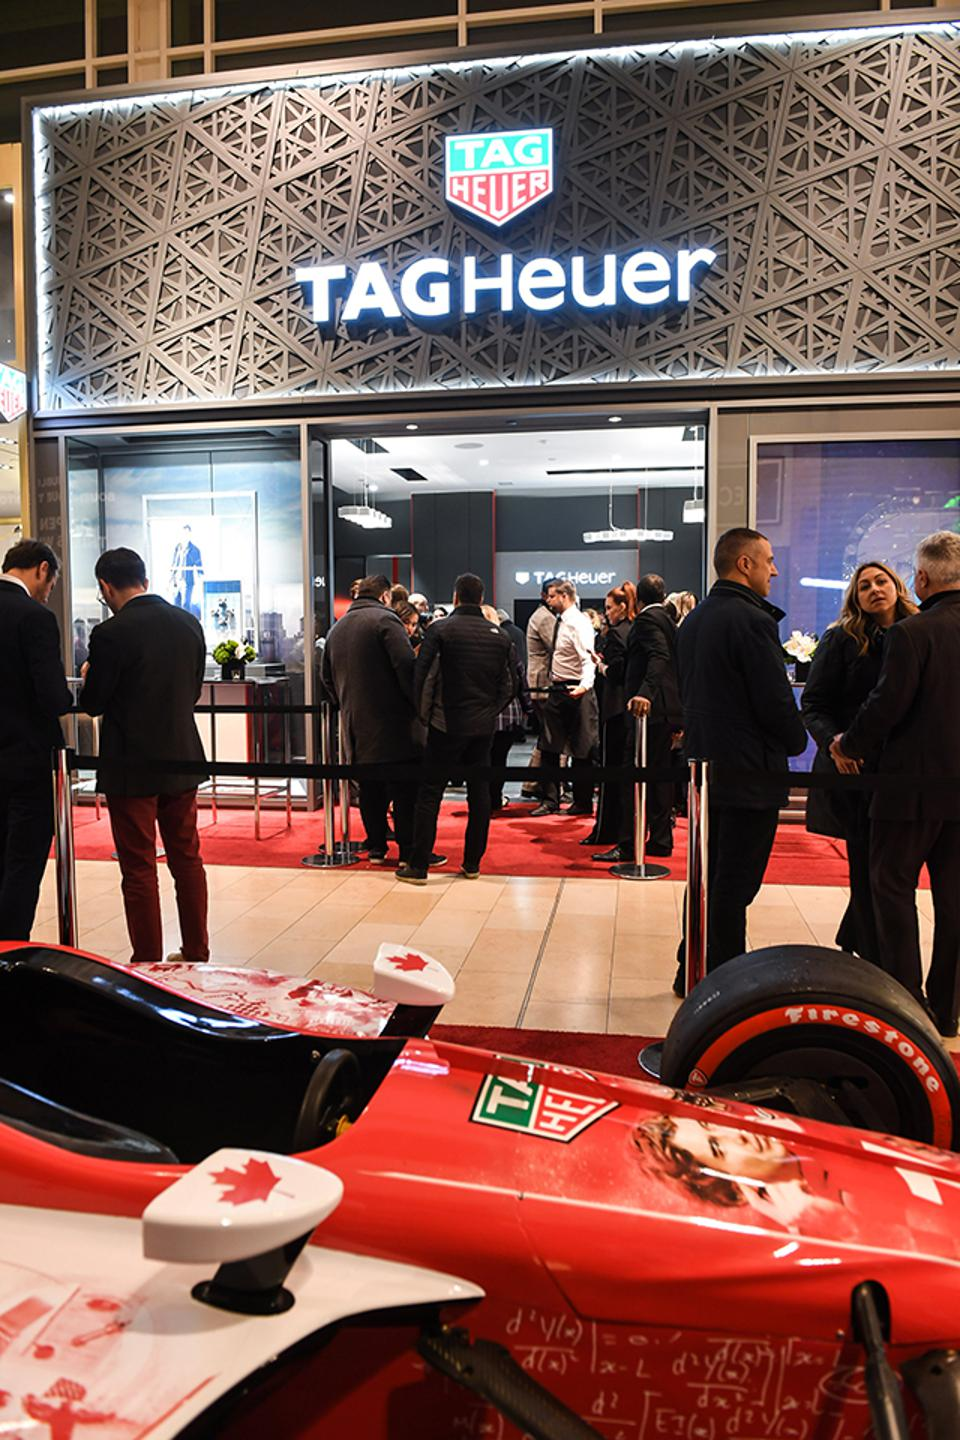 TAG Heuer opened its first Canadian boutique at Yorkdale Shopping Centre last night in Toronto.